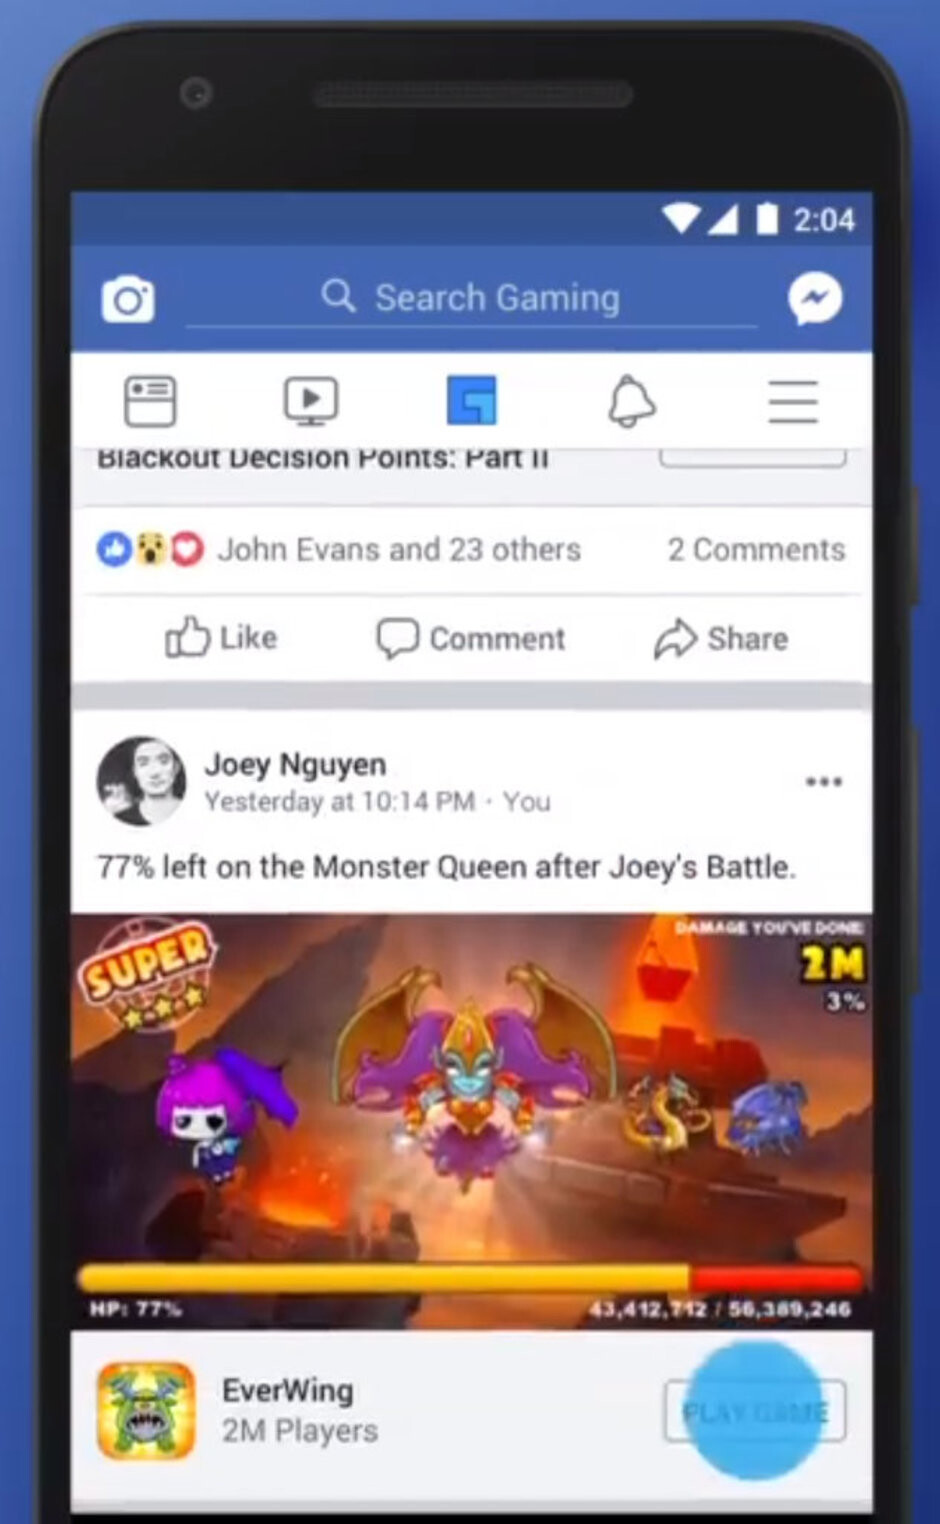 Facebook bets big on entertainment, adds new tab on its mobile app